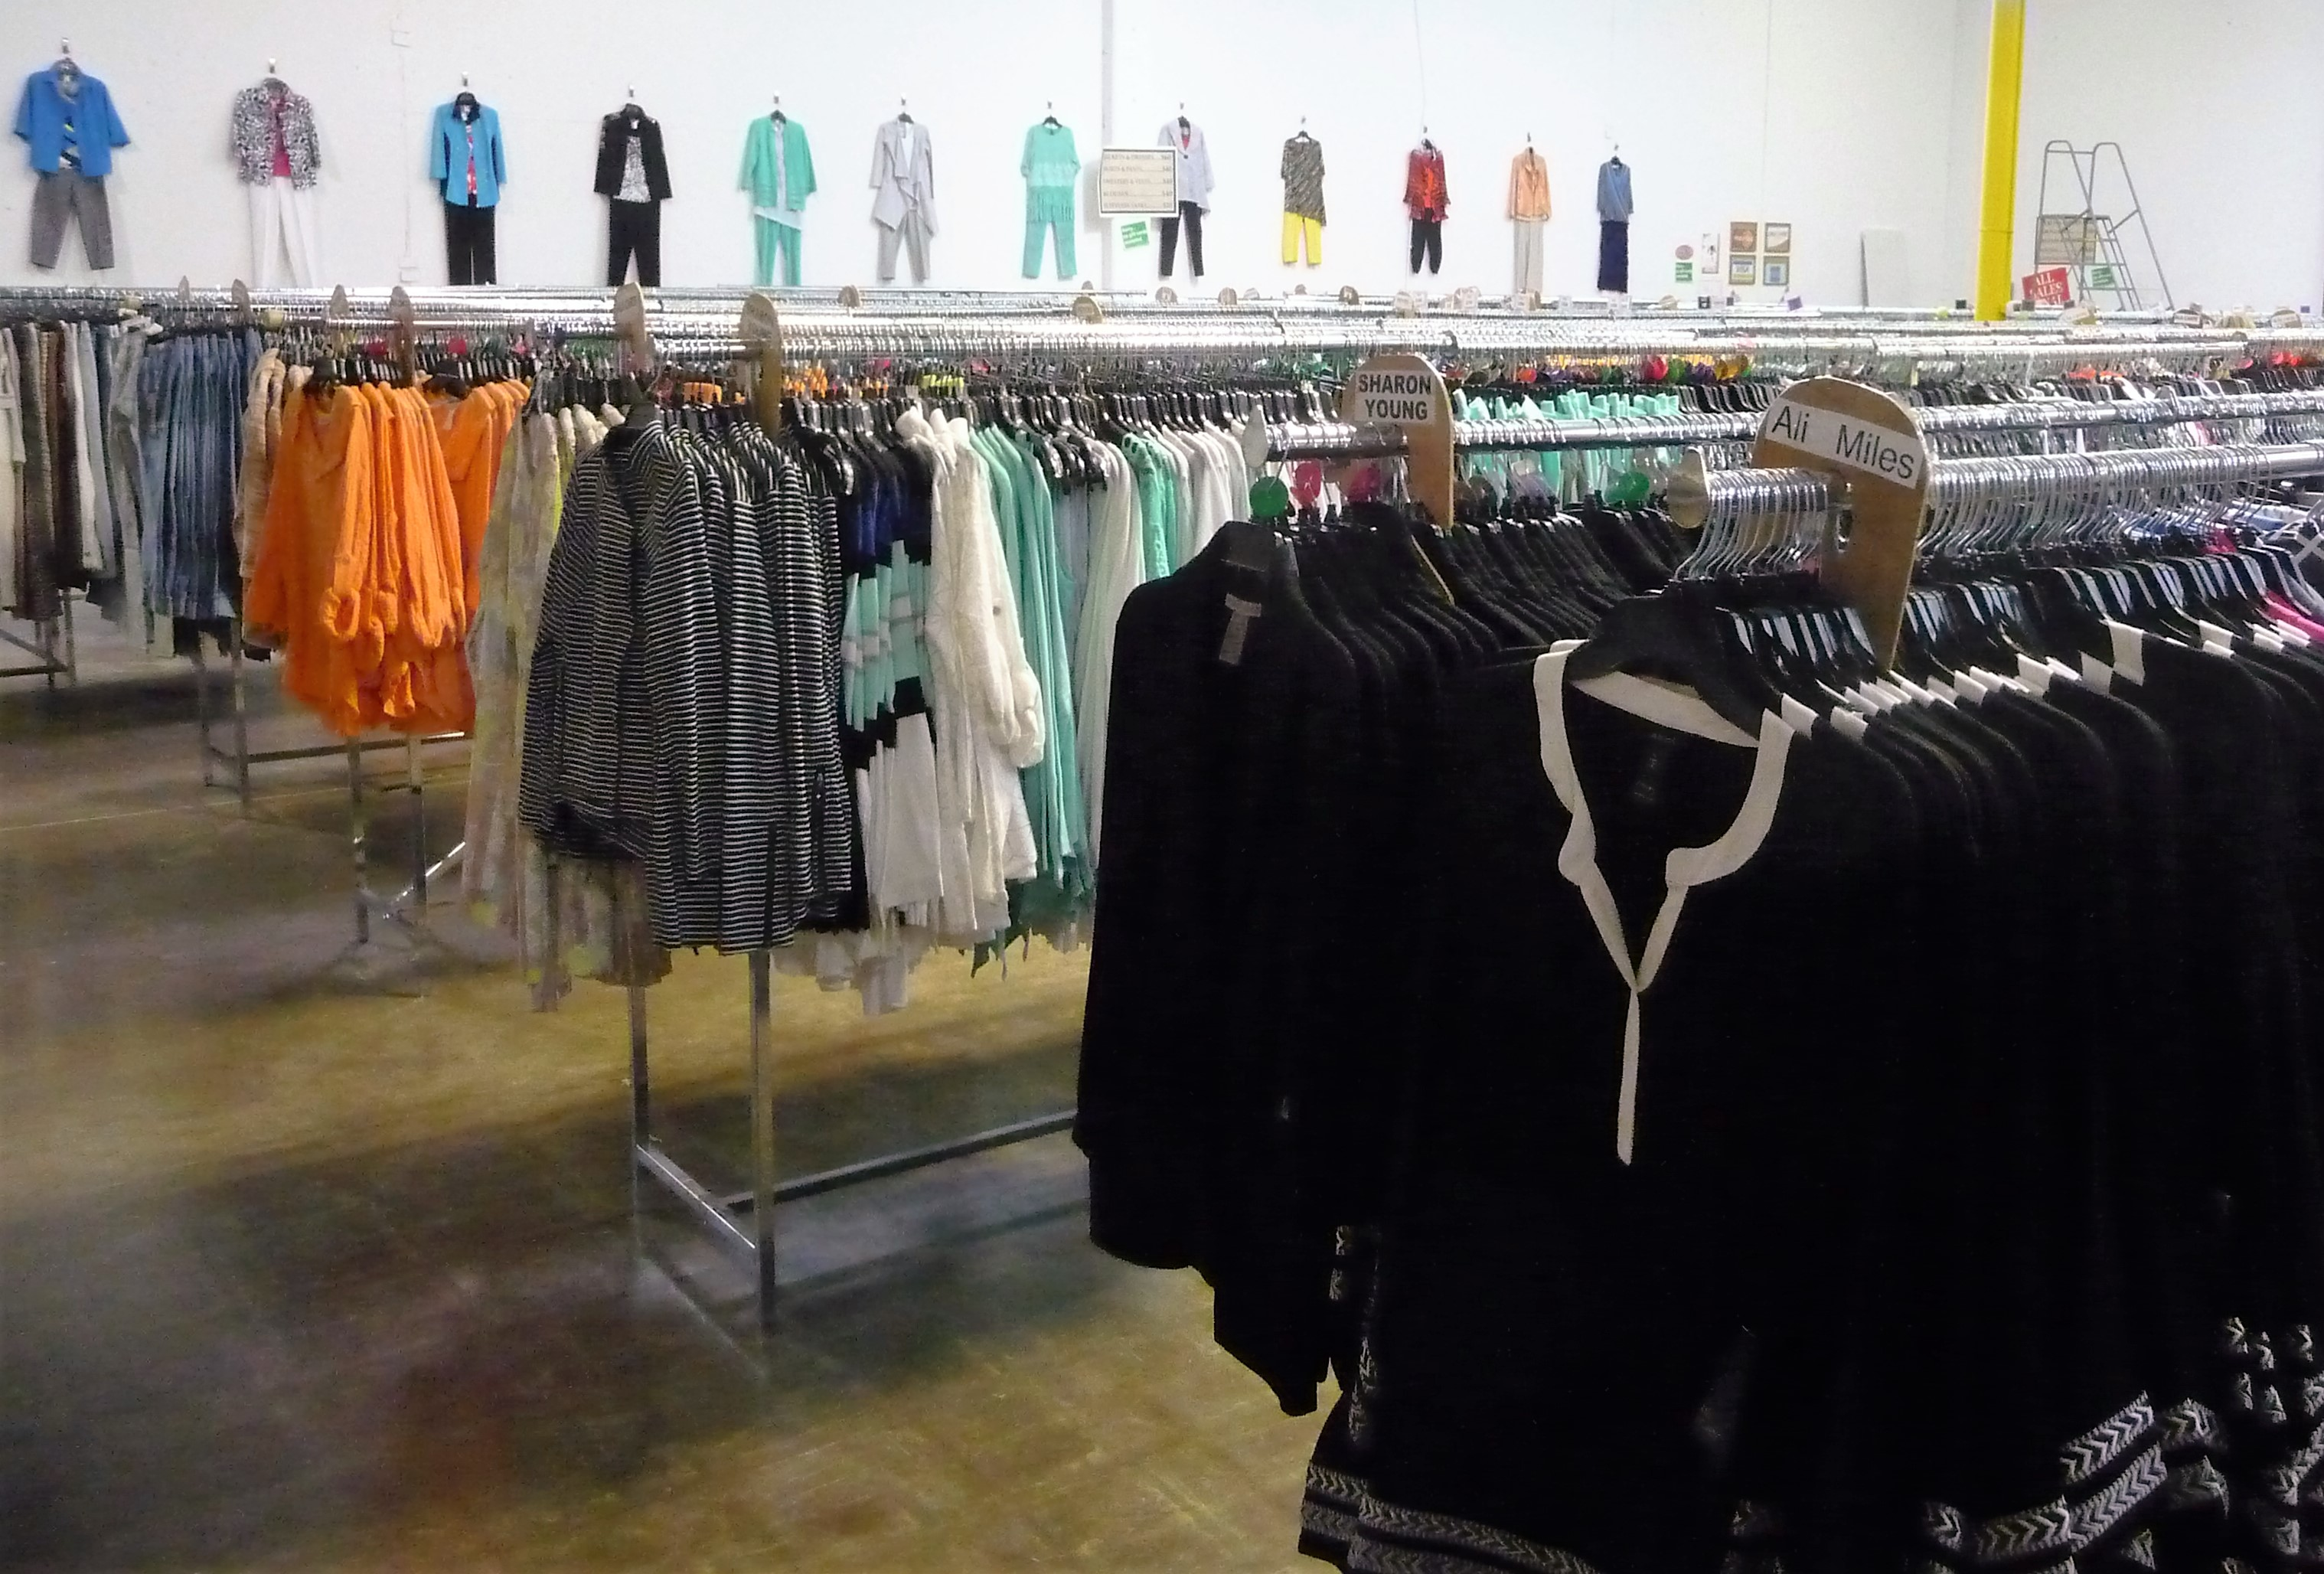 3 Day Sharon Young And Ladies Designer Brand Clothing Warehouse Sale Opens To The Public On Thursday Frugal In Fort Worth Blog Coupon Savings Personal Budget Tips Cheap Dfw Deals